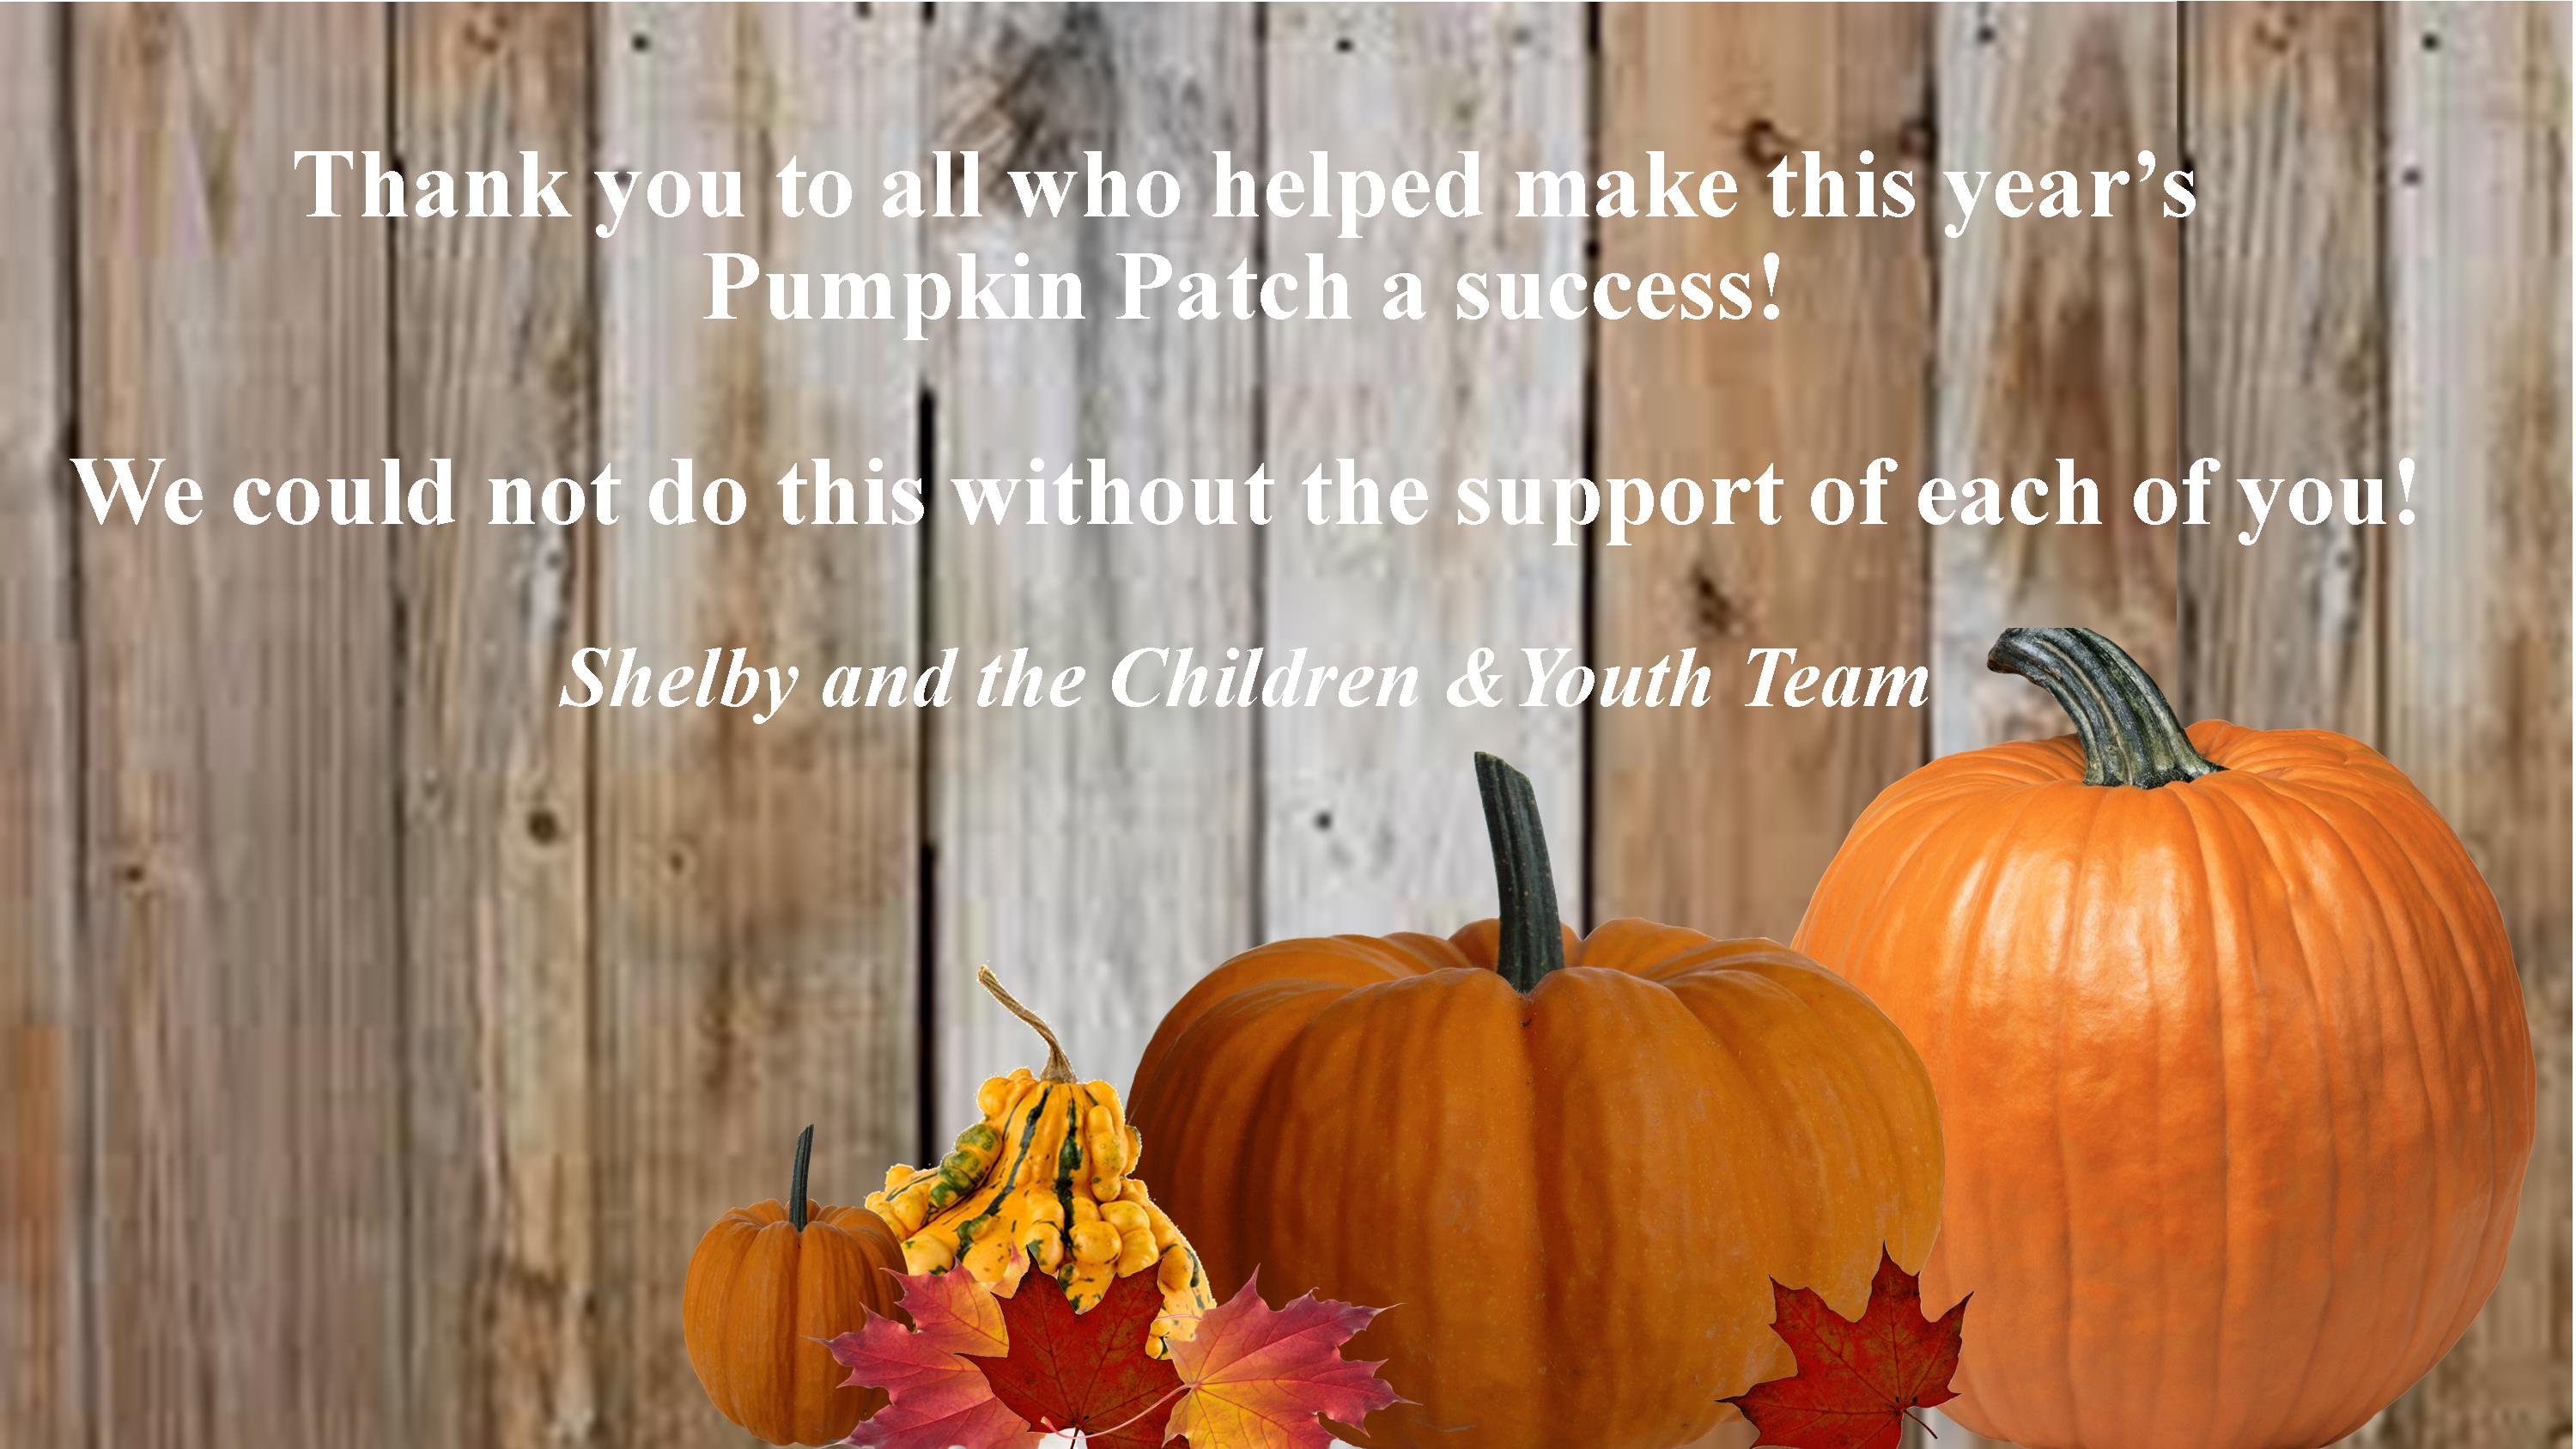 Pumpkin Patch 2020 Thank You